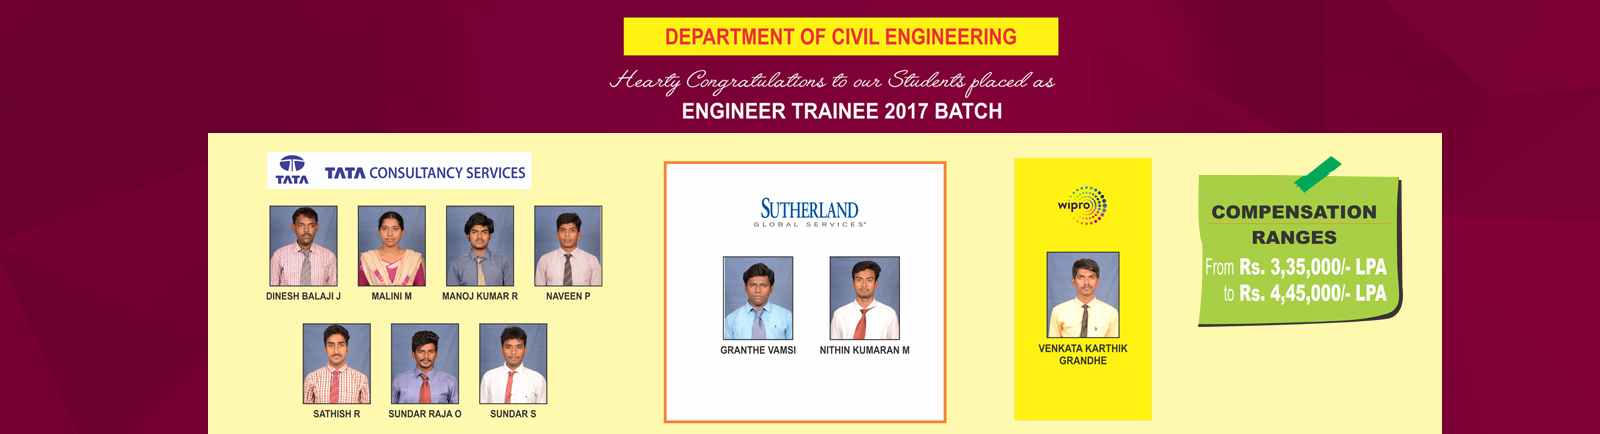 Engineering-Trainee-2017